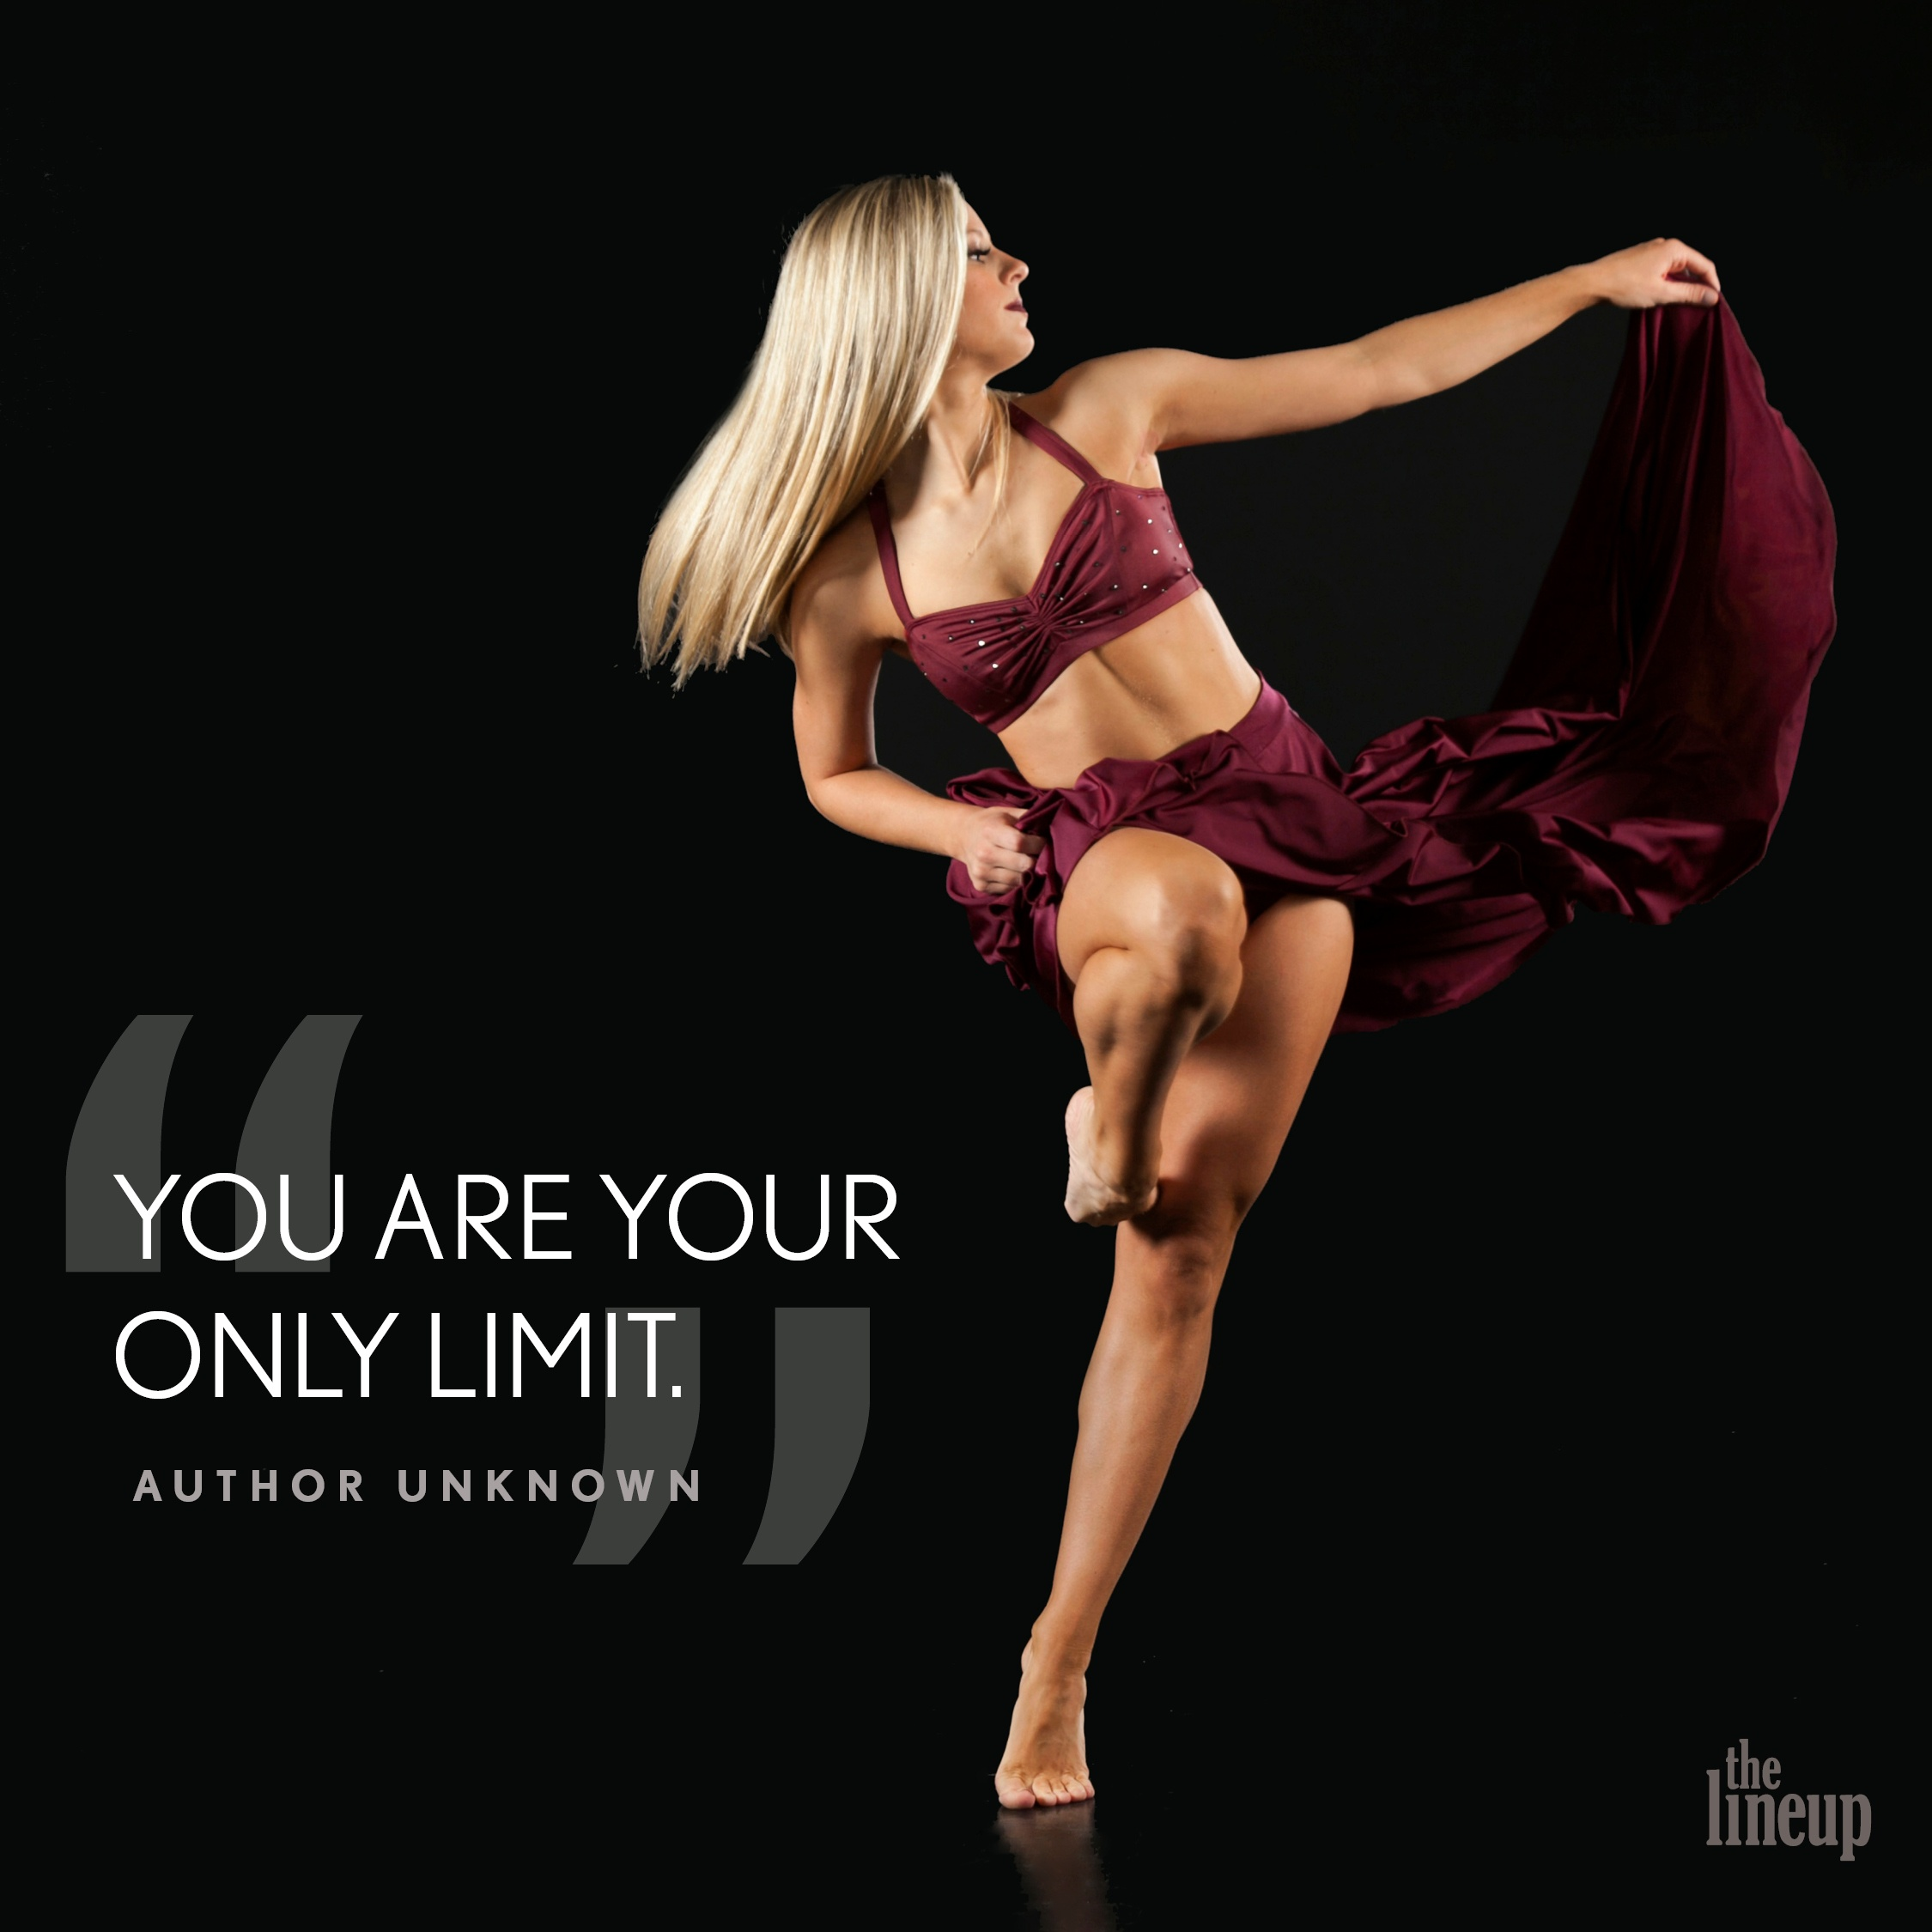 """""""You are your only limit."""" - Author Unknown Motivational Quotes for Dancers"""